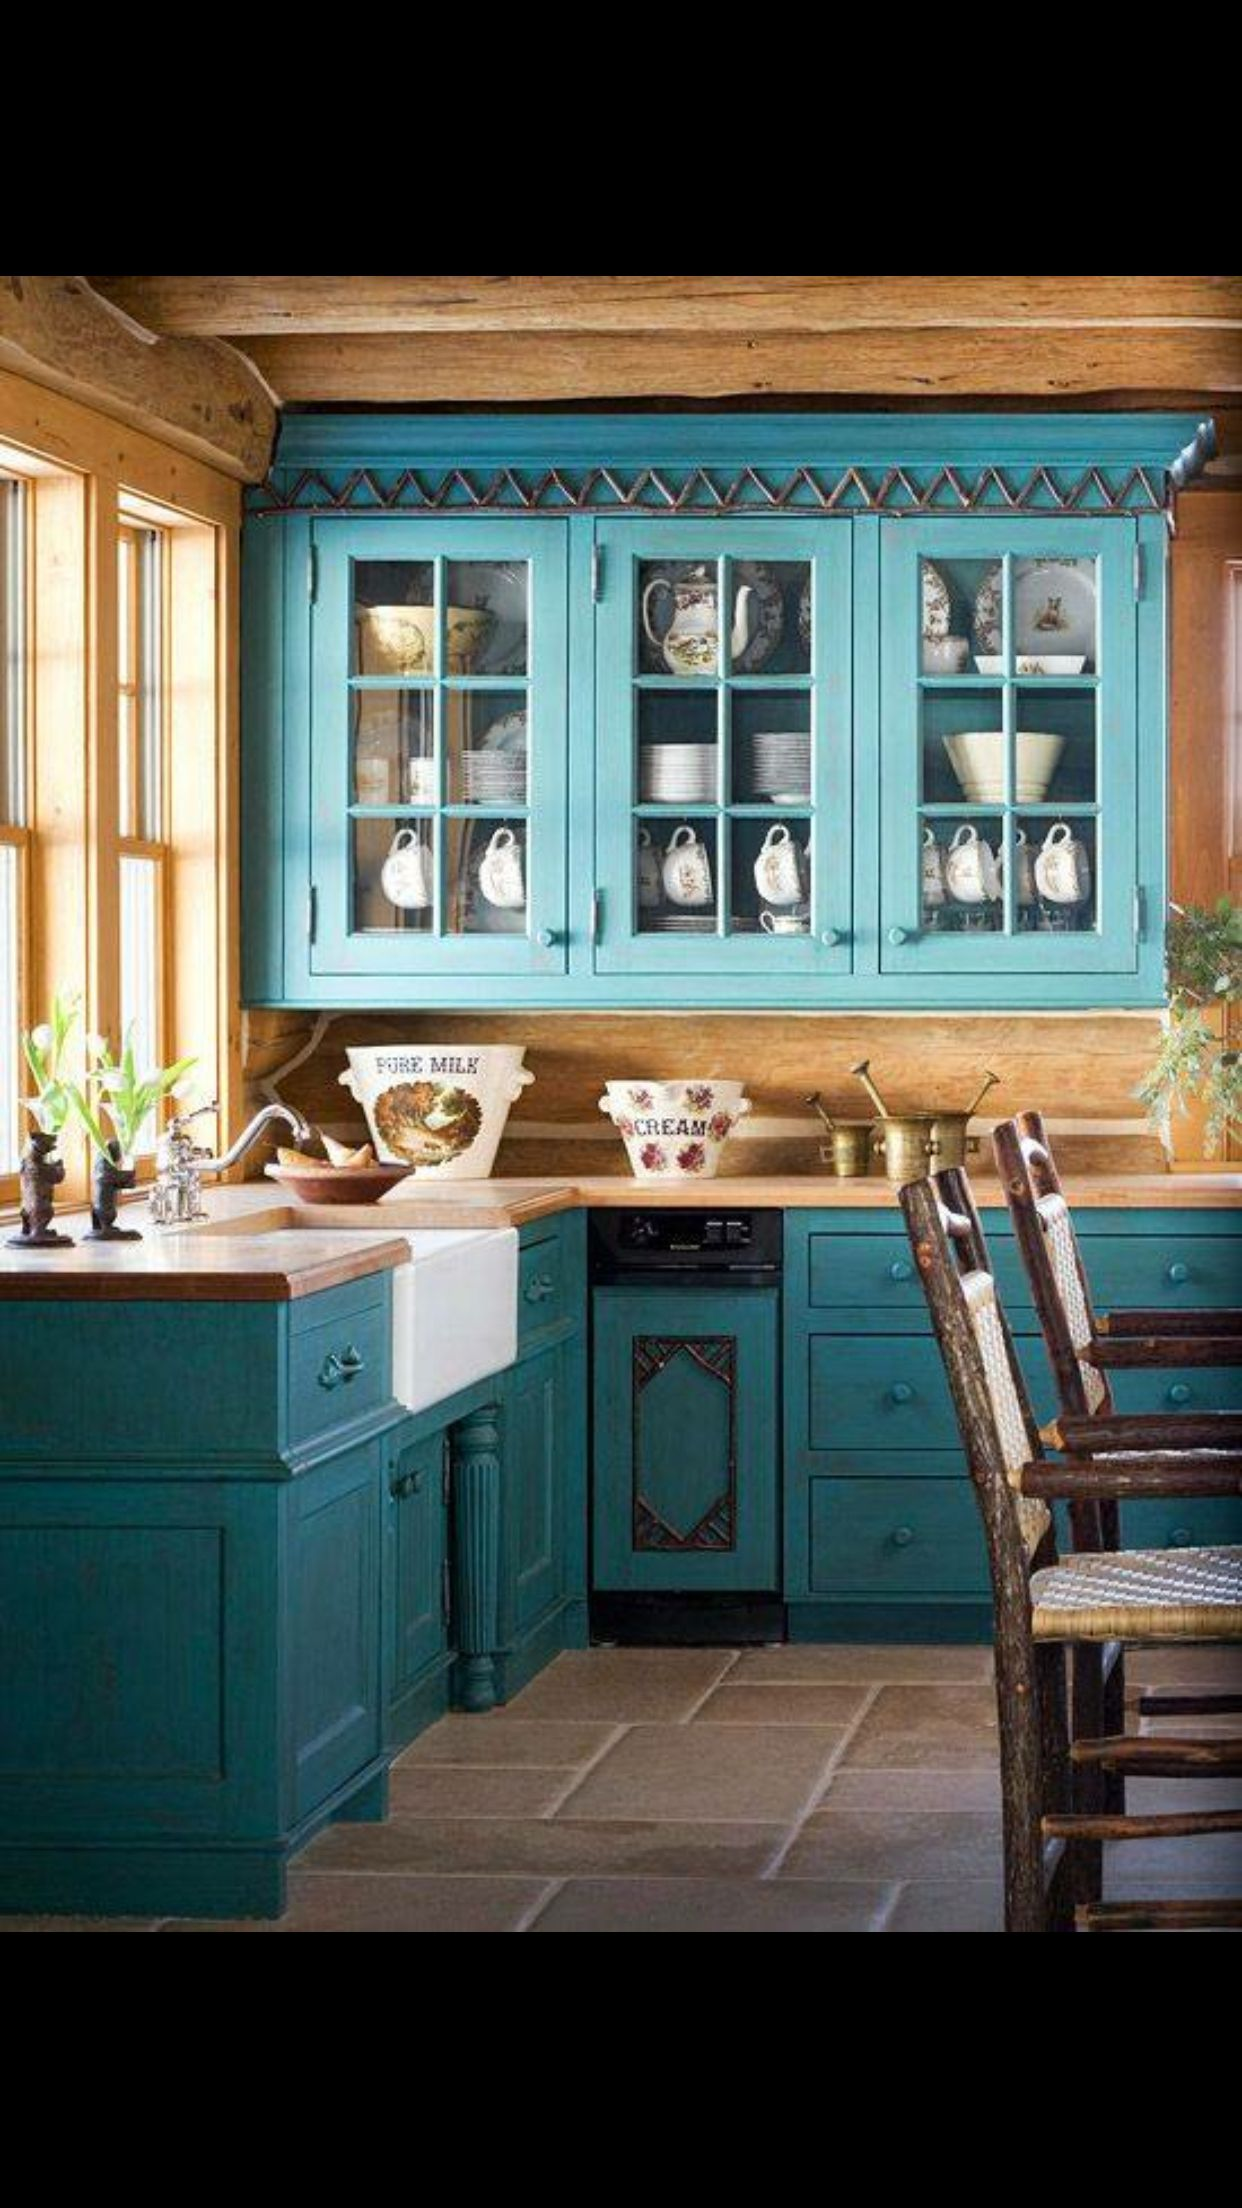 Pin by Katie on Teal Cottage | Pinterest | Cabin, Kitchens and ...